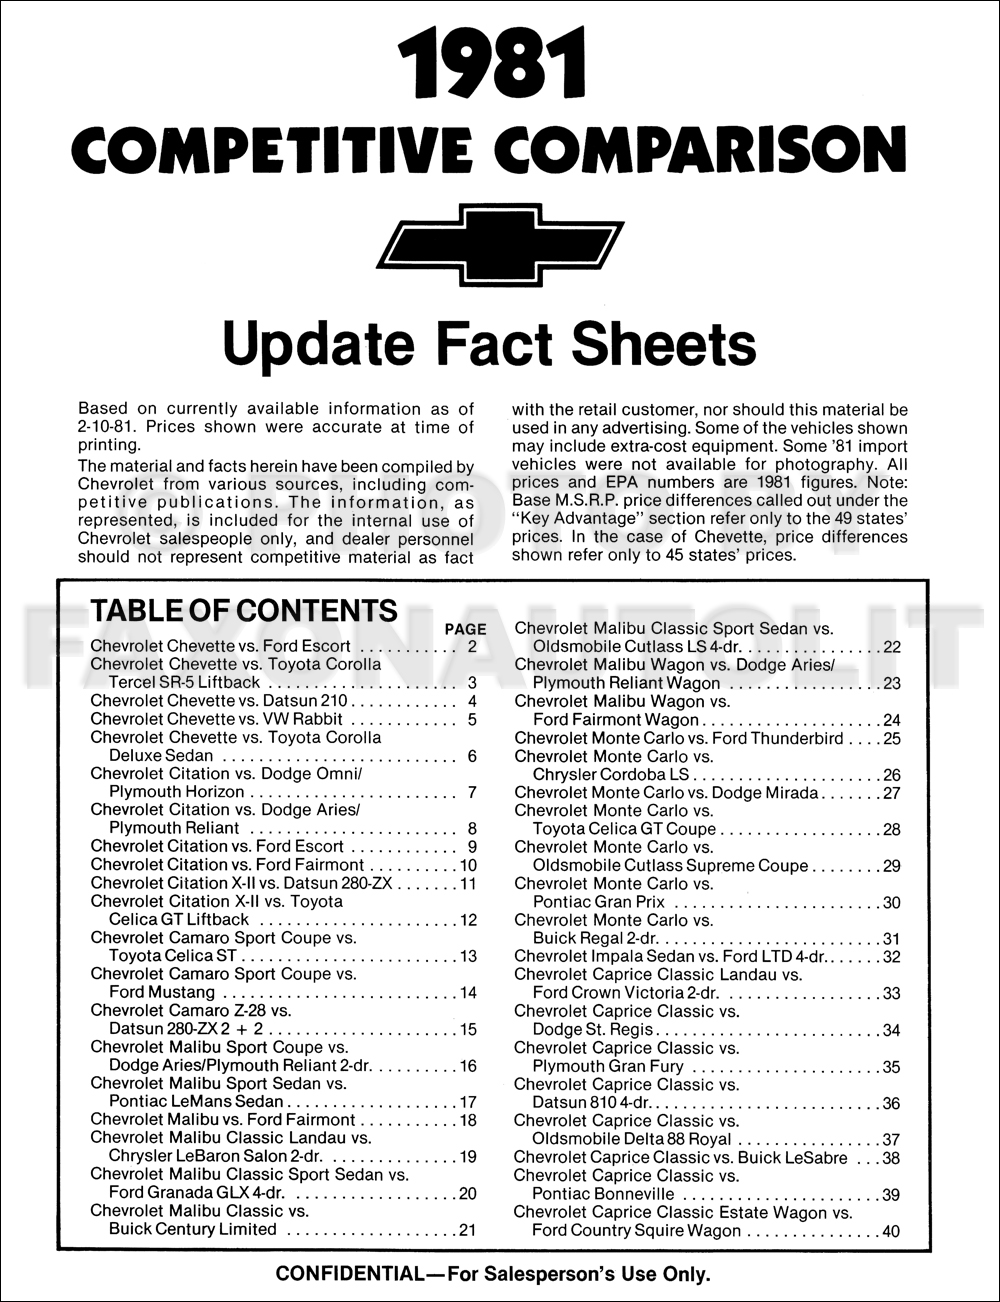 1981 Chevrolet Car Competitive Comparison Dealer Album Original